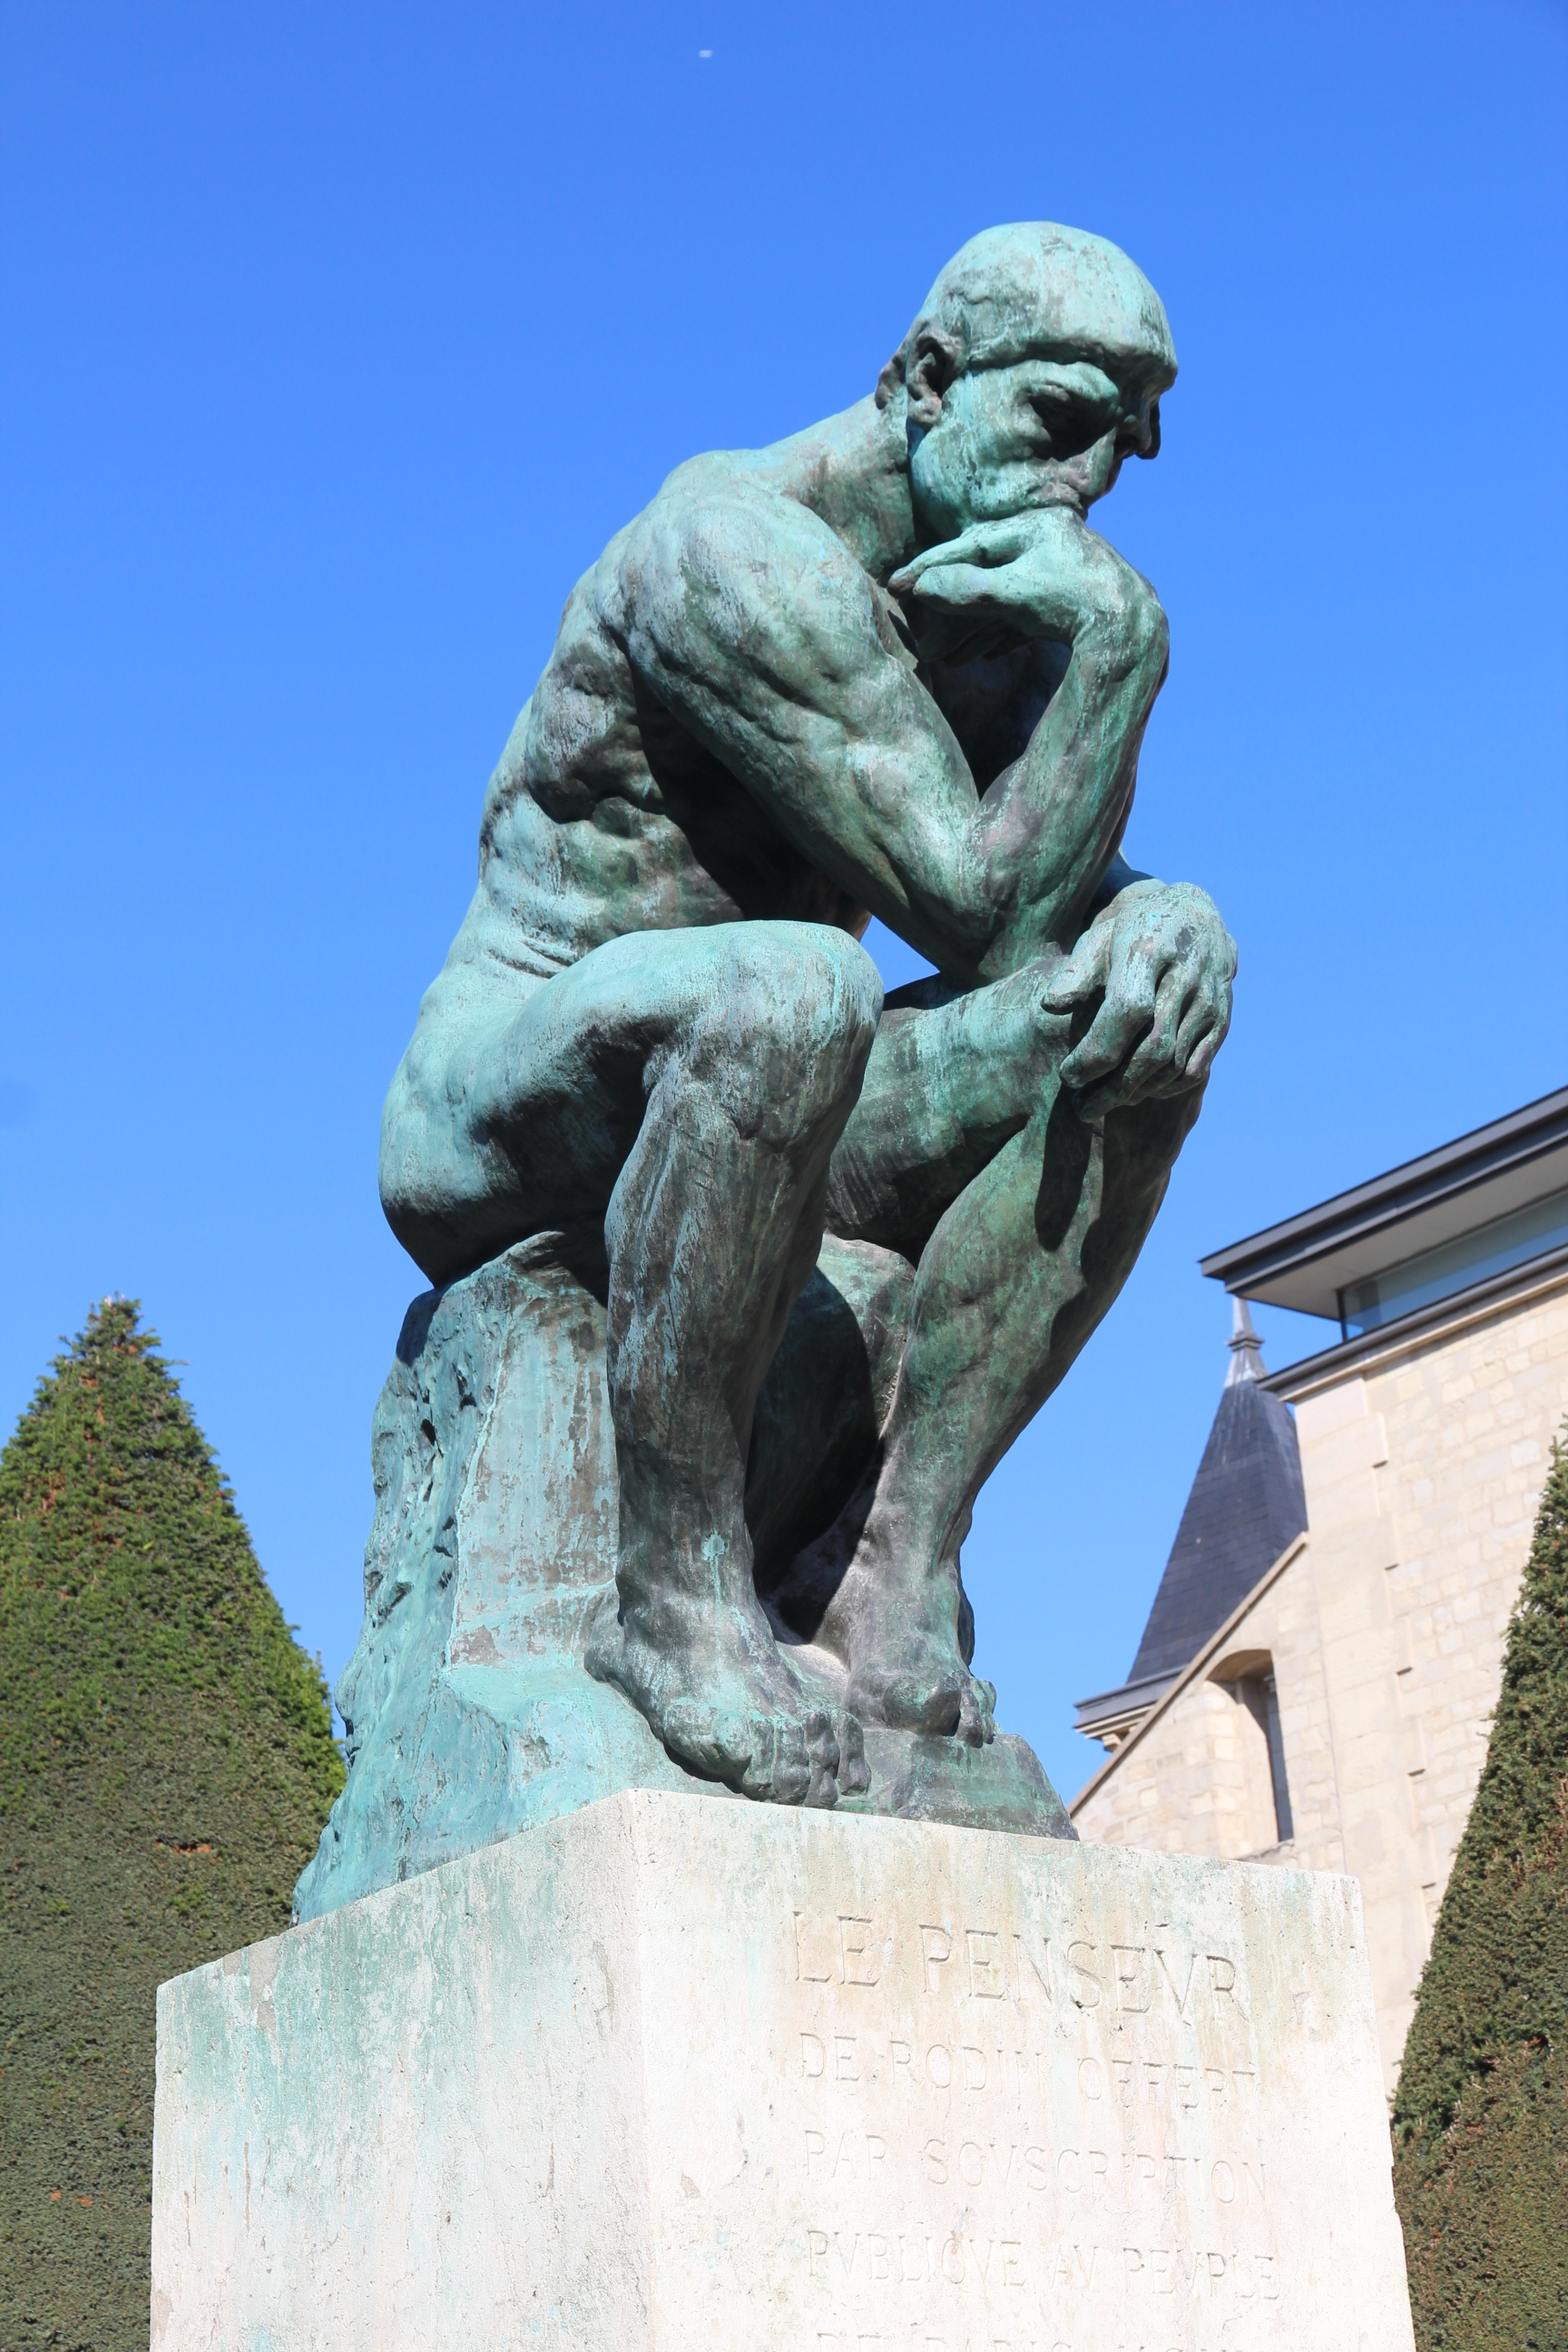 Thinking about the works of sculptor, Auguste Rodin ...